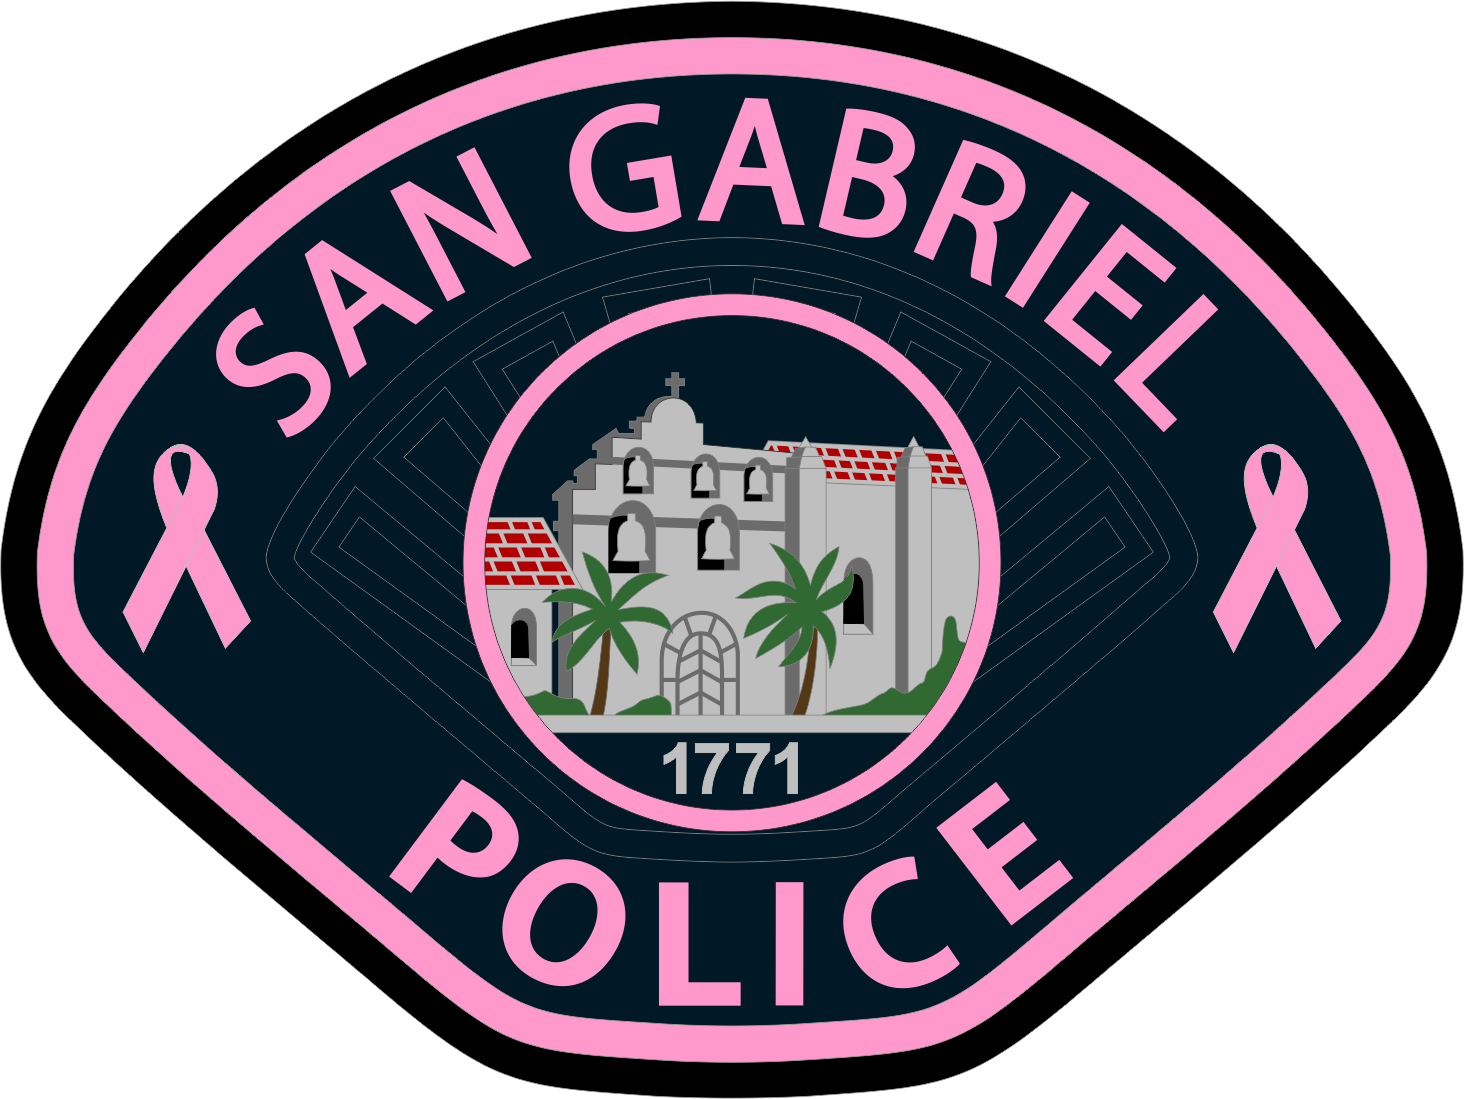 SAN GABRIEL POLICE (CA) - PINK PATCH 2016.png